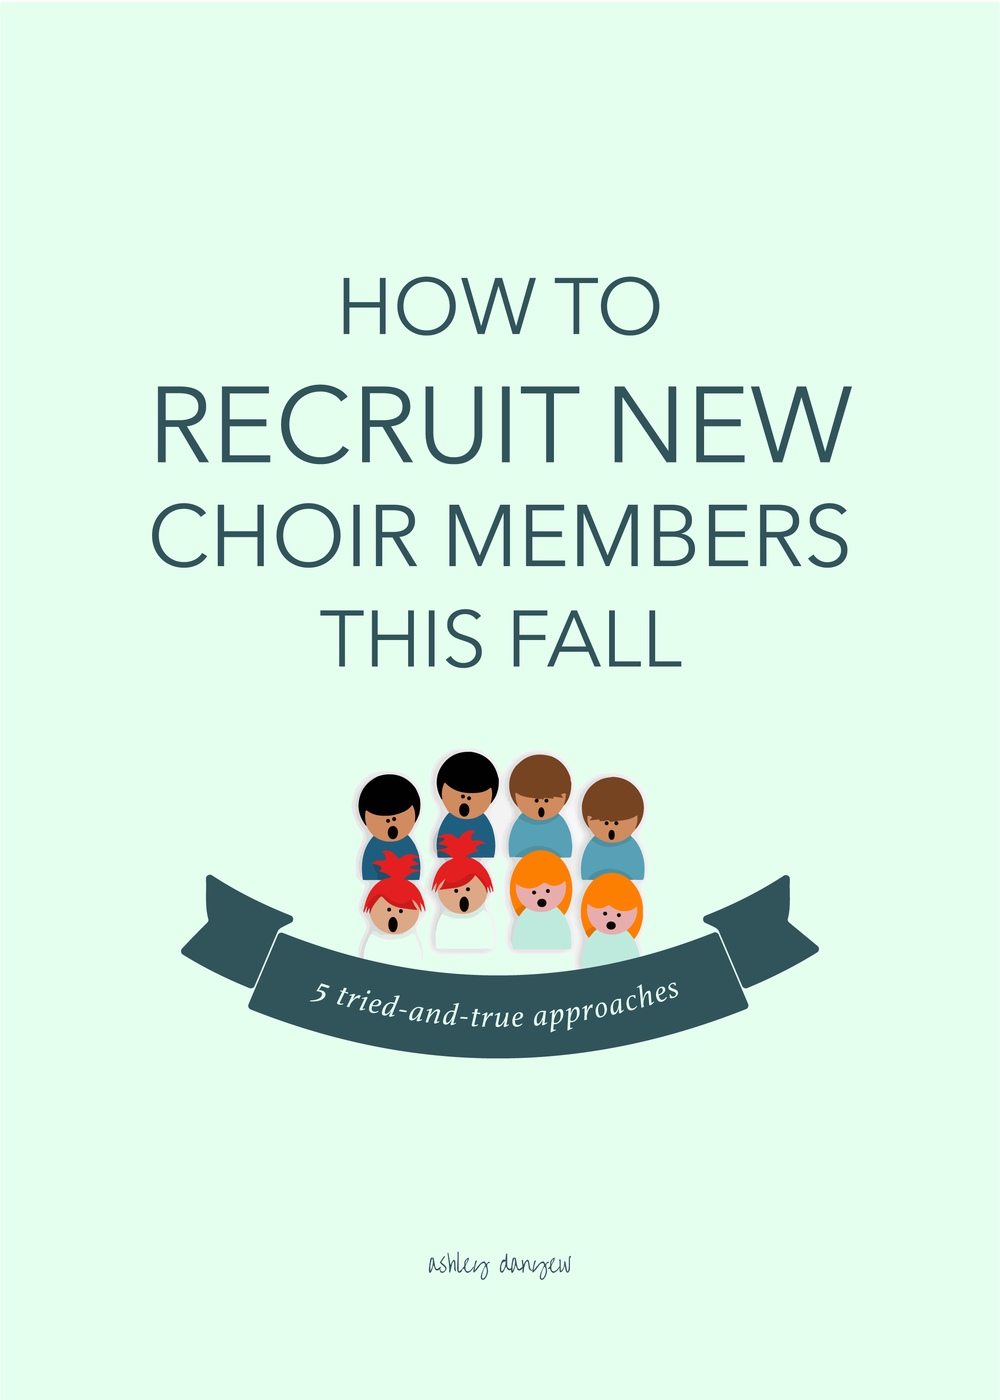 How to Recruit New Choir Members This Fall-44.png